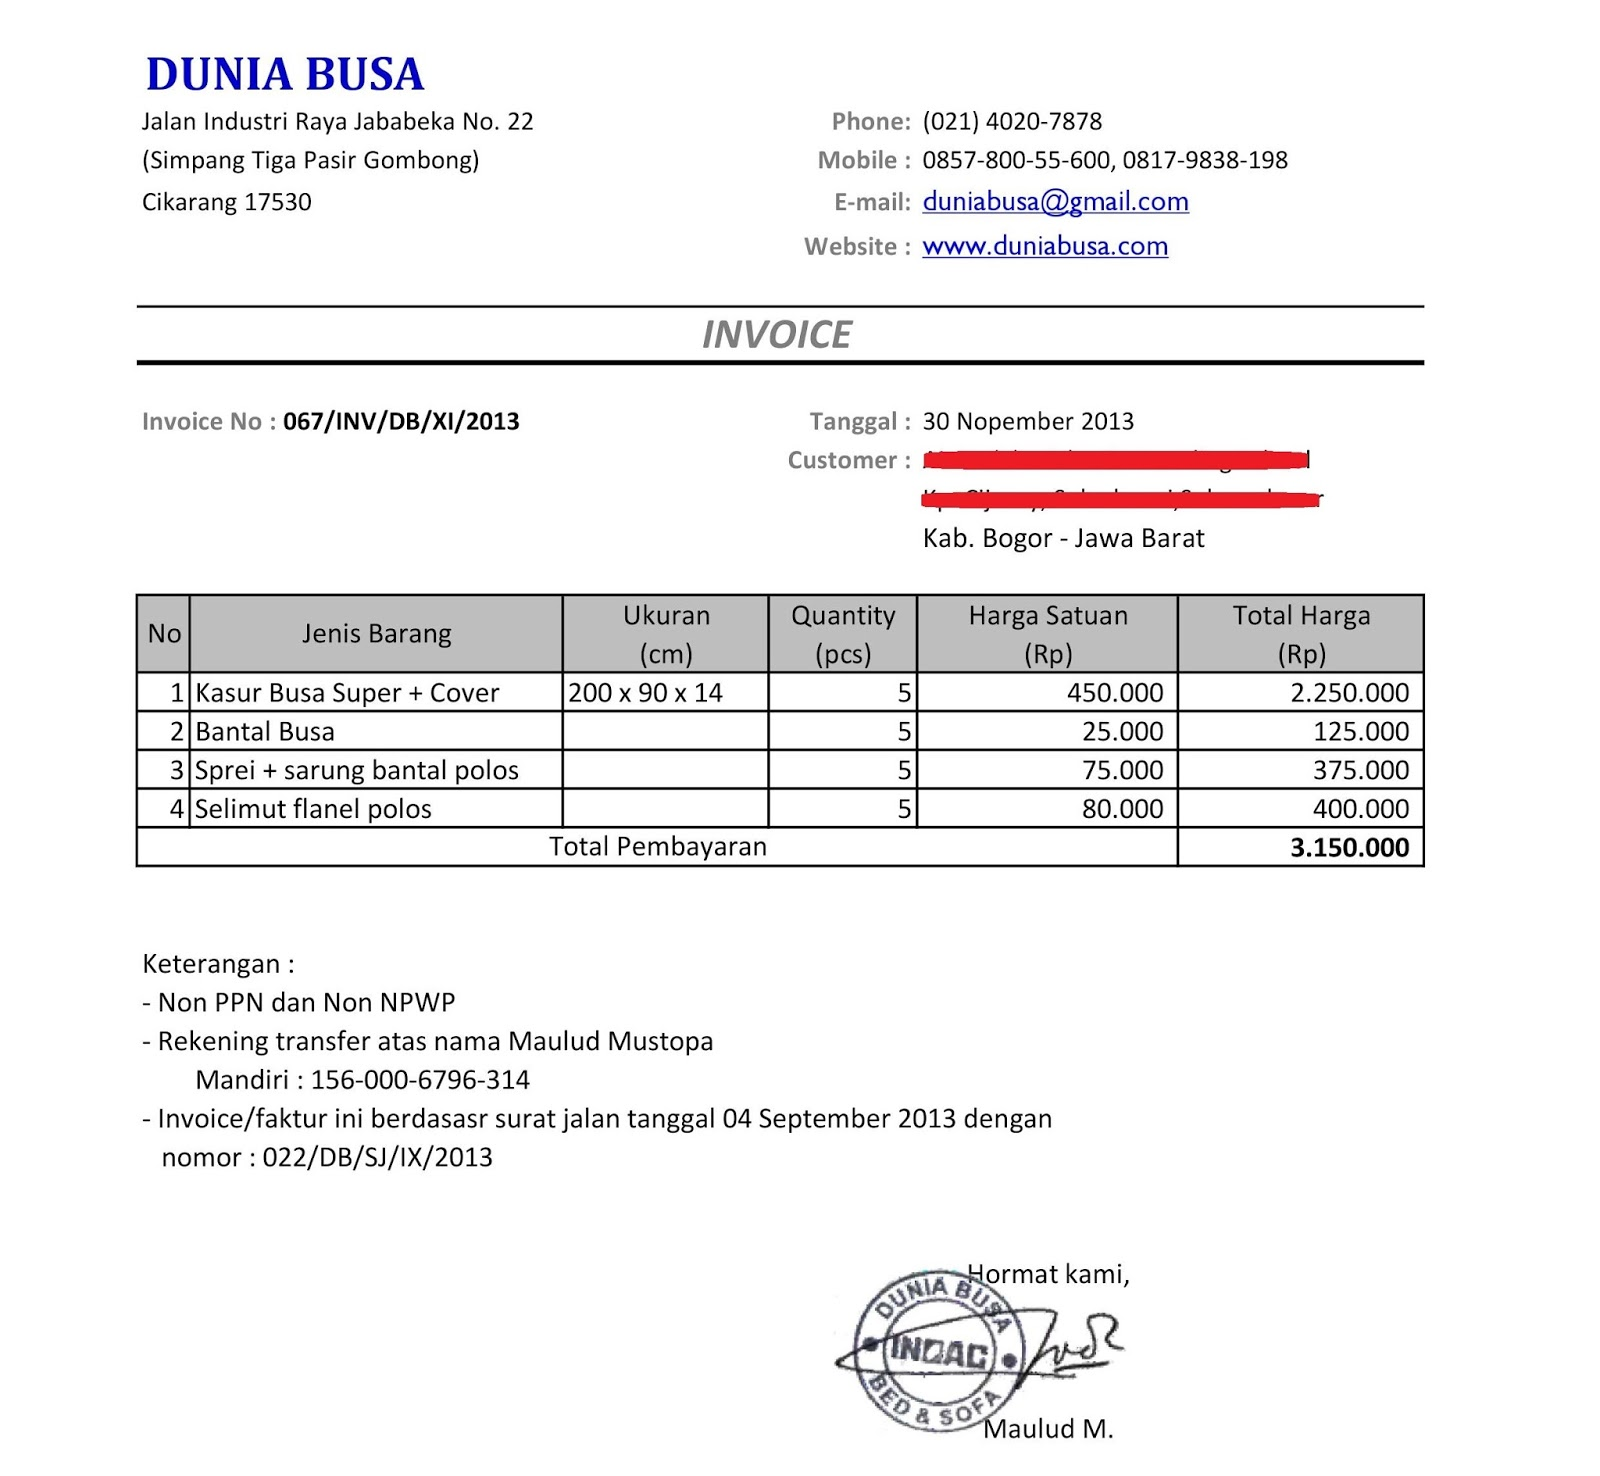 Picnictoimpeachus  Unusual Free Invoice Online  Create Invoice Online  Invoice Template  With Exciting Contoh Format Invoice Atau Surat Tagihan  Brankas Arsip  Free Invoice Online With Delectable Personalised Duplicate Invoice Pads Also Rbs Invoice Finance Limited In Addition Basic Tax Invoice Template And What Is A Proforma Invoice Used For As Well As Online Invoice Template Free Additionally Automatic Invoice Generator From Sklepco With Picnictoimpeachus  Exciting Free Invoice Online  Create Invoice Online  Invoice Template  With Delectable Contoh Format Invoice Atau Surat Tagihan  Brankas Arsip  Free Invoice Online And Unusual Personalised Duplicate Invoice Pads Also Rbs Invoice Finance Limited In Addition Basic Tax Invoice Template From Sklepco